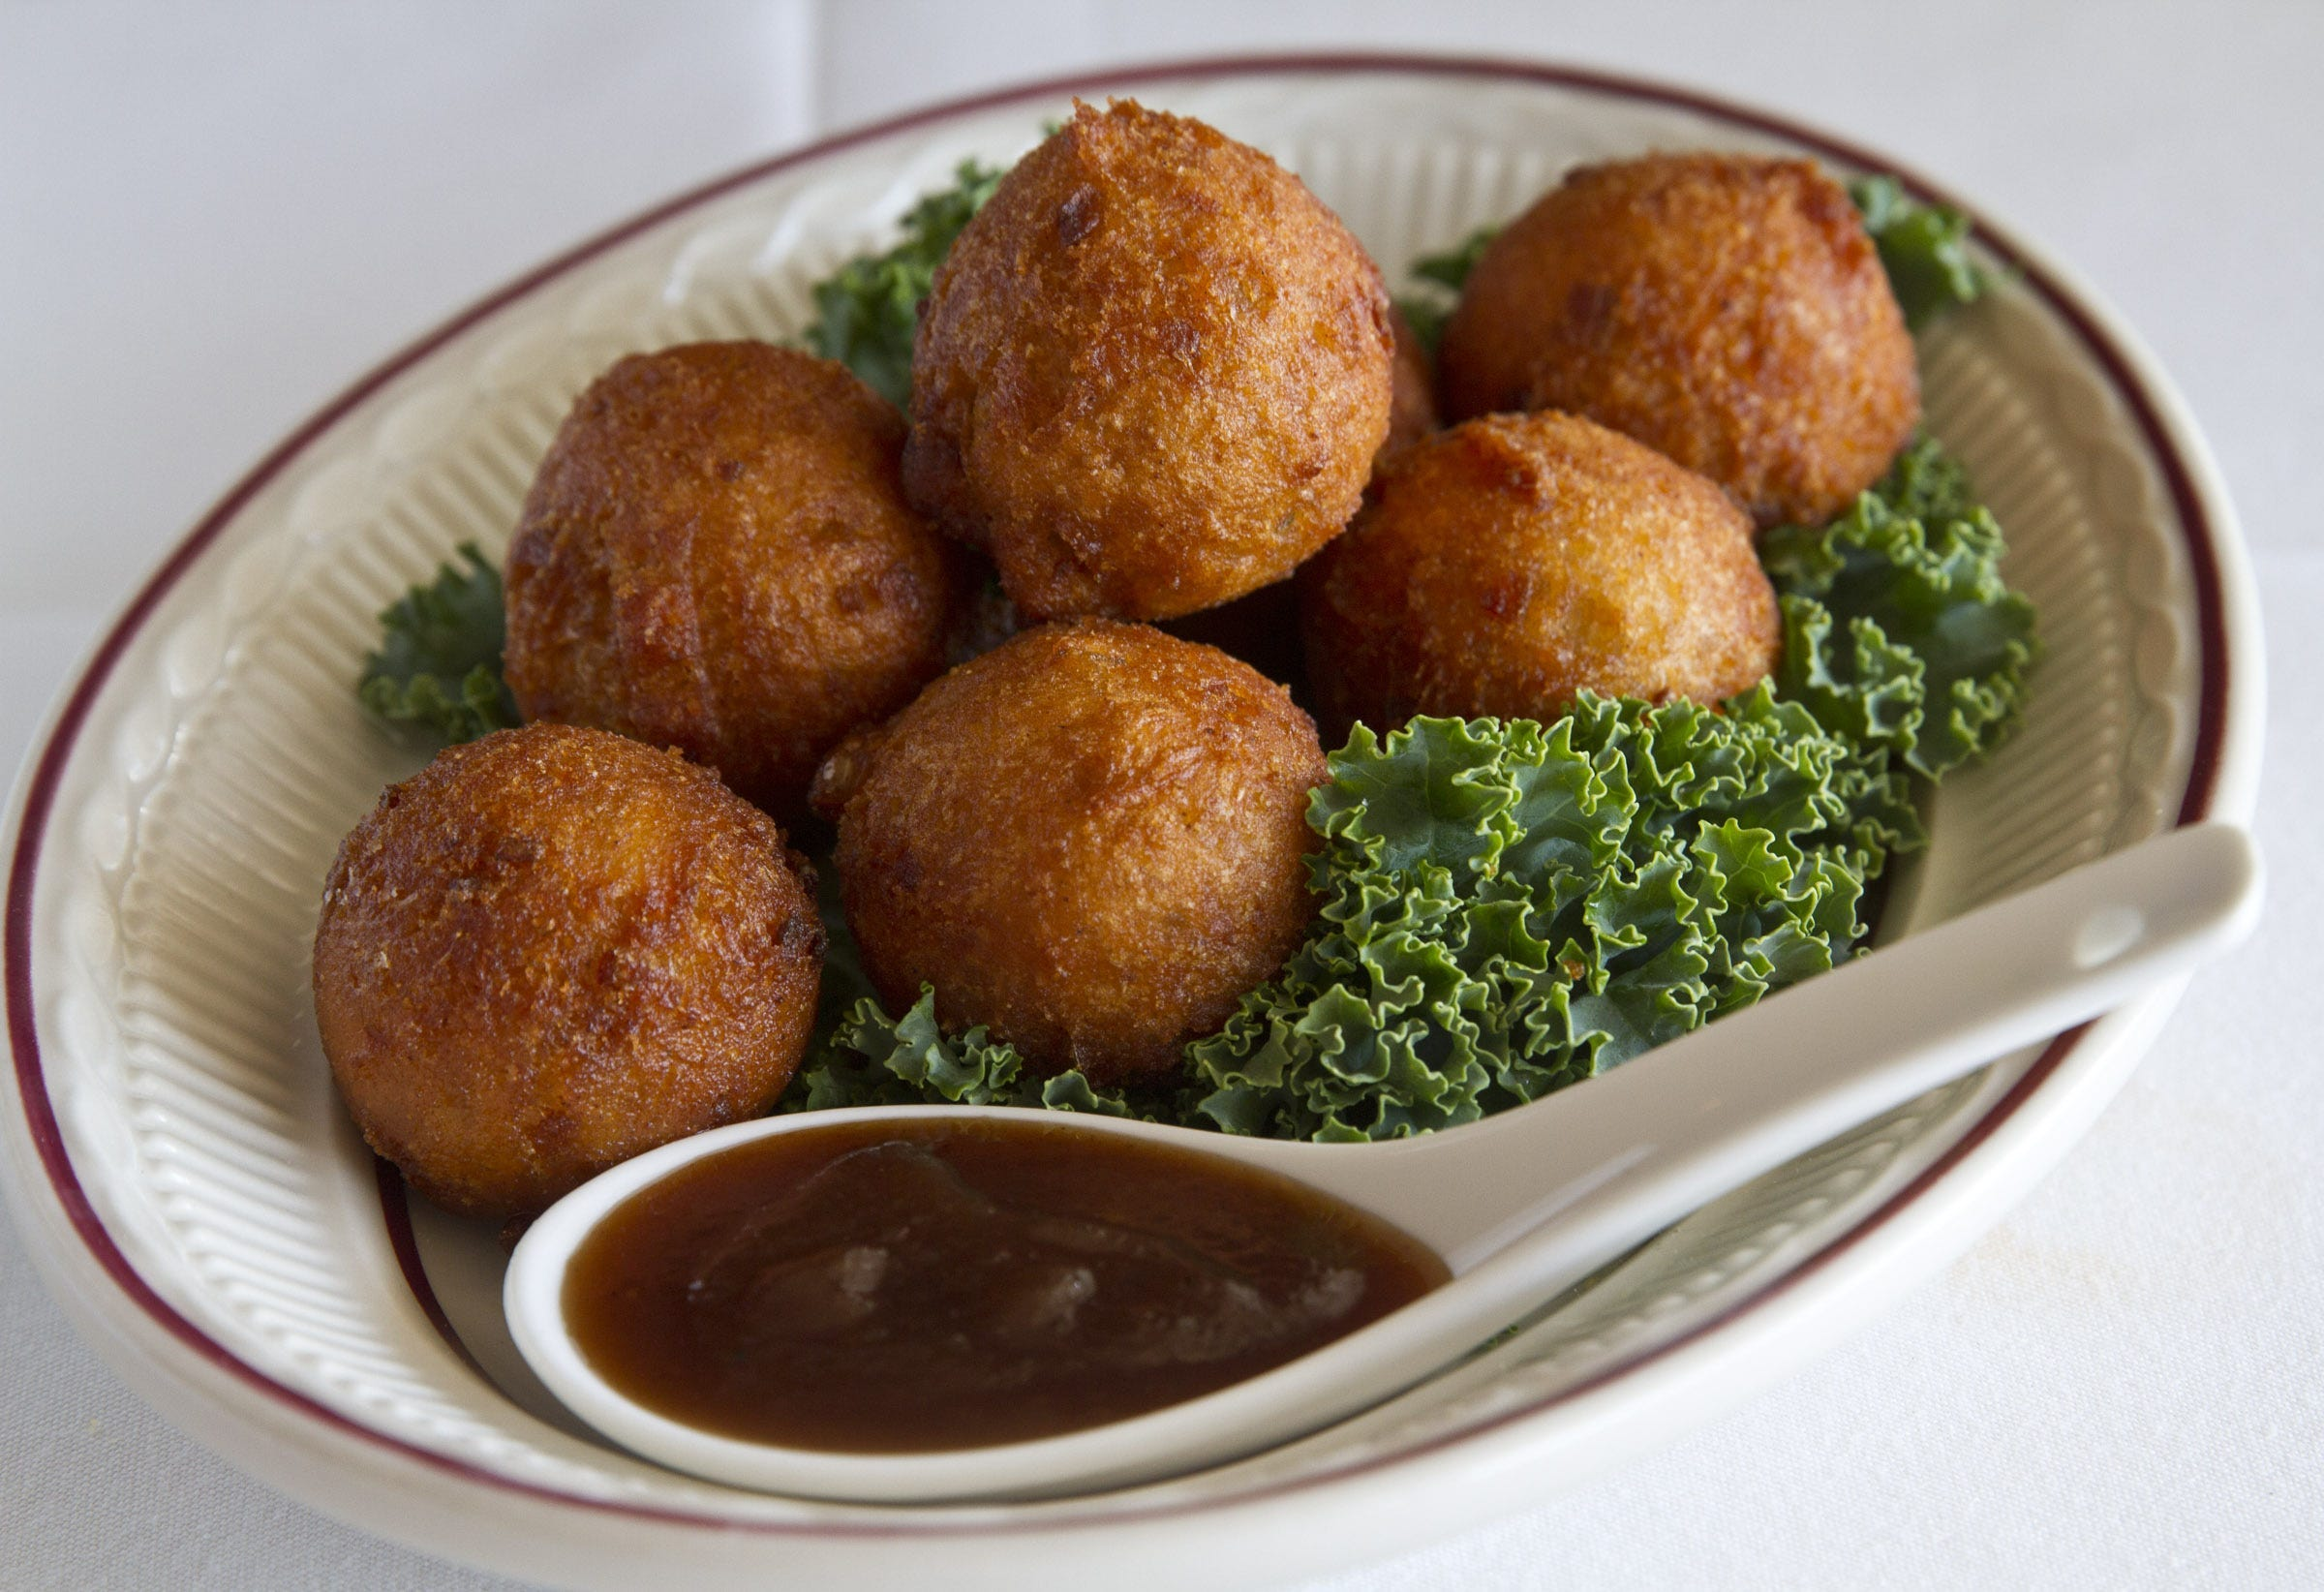 Hush puppies are said to have gotten their name from Southern hunters and fishermen who would fry up cornmeal balls to feed to their — presumably noisy — dogs. These sweet potato hush puppies are served at Simply Southern in Belmar, New Jersey.